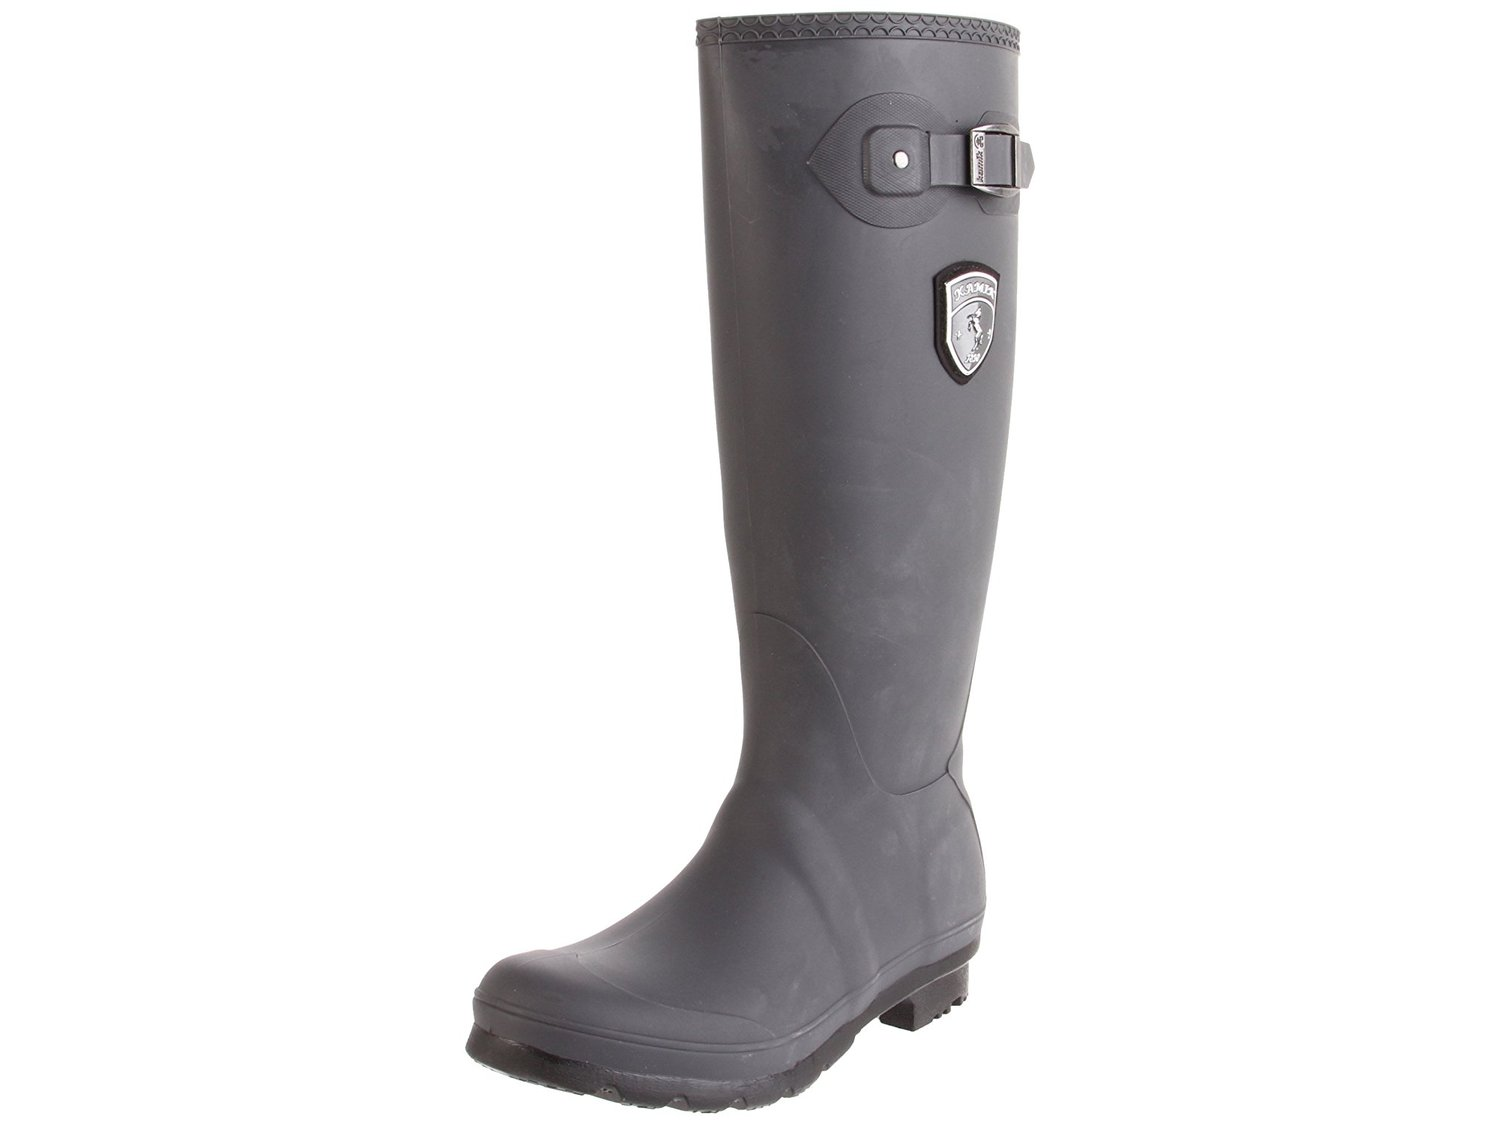 Image result for KAMIK WOMEN'S WATERPROOF JENNIFER RAIN BOOTS